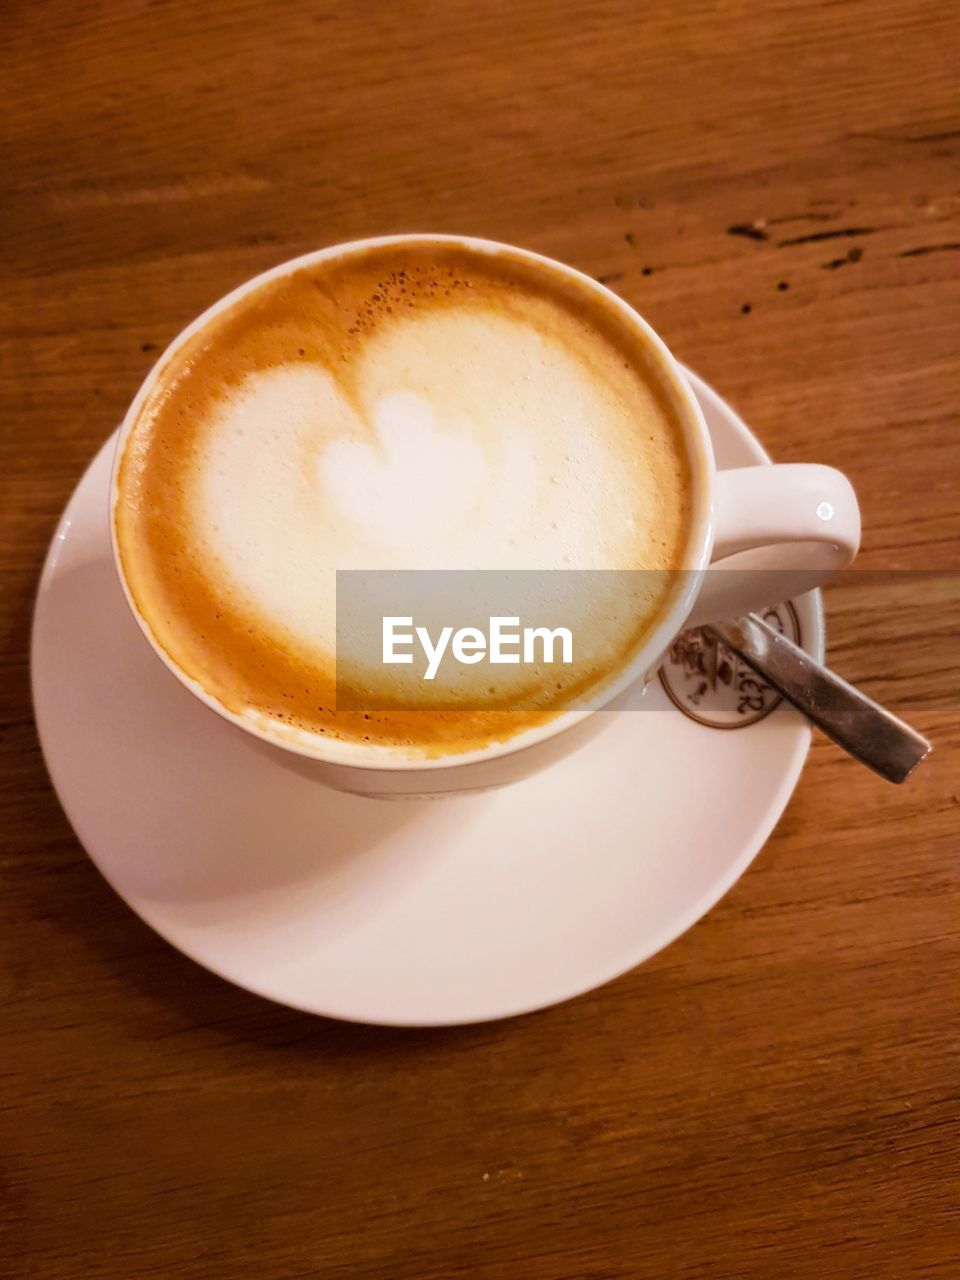 drink, refreshment, coffee, cup, food and drink, coffee - drink, coffee cup, mug, still life, table, frothy drink, crockery, indoors, saucer, no people, freshness, hot drink, cappuccino, close-up, high angle view, latte, froth, non-alcoholic beverage, caffeine